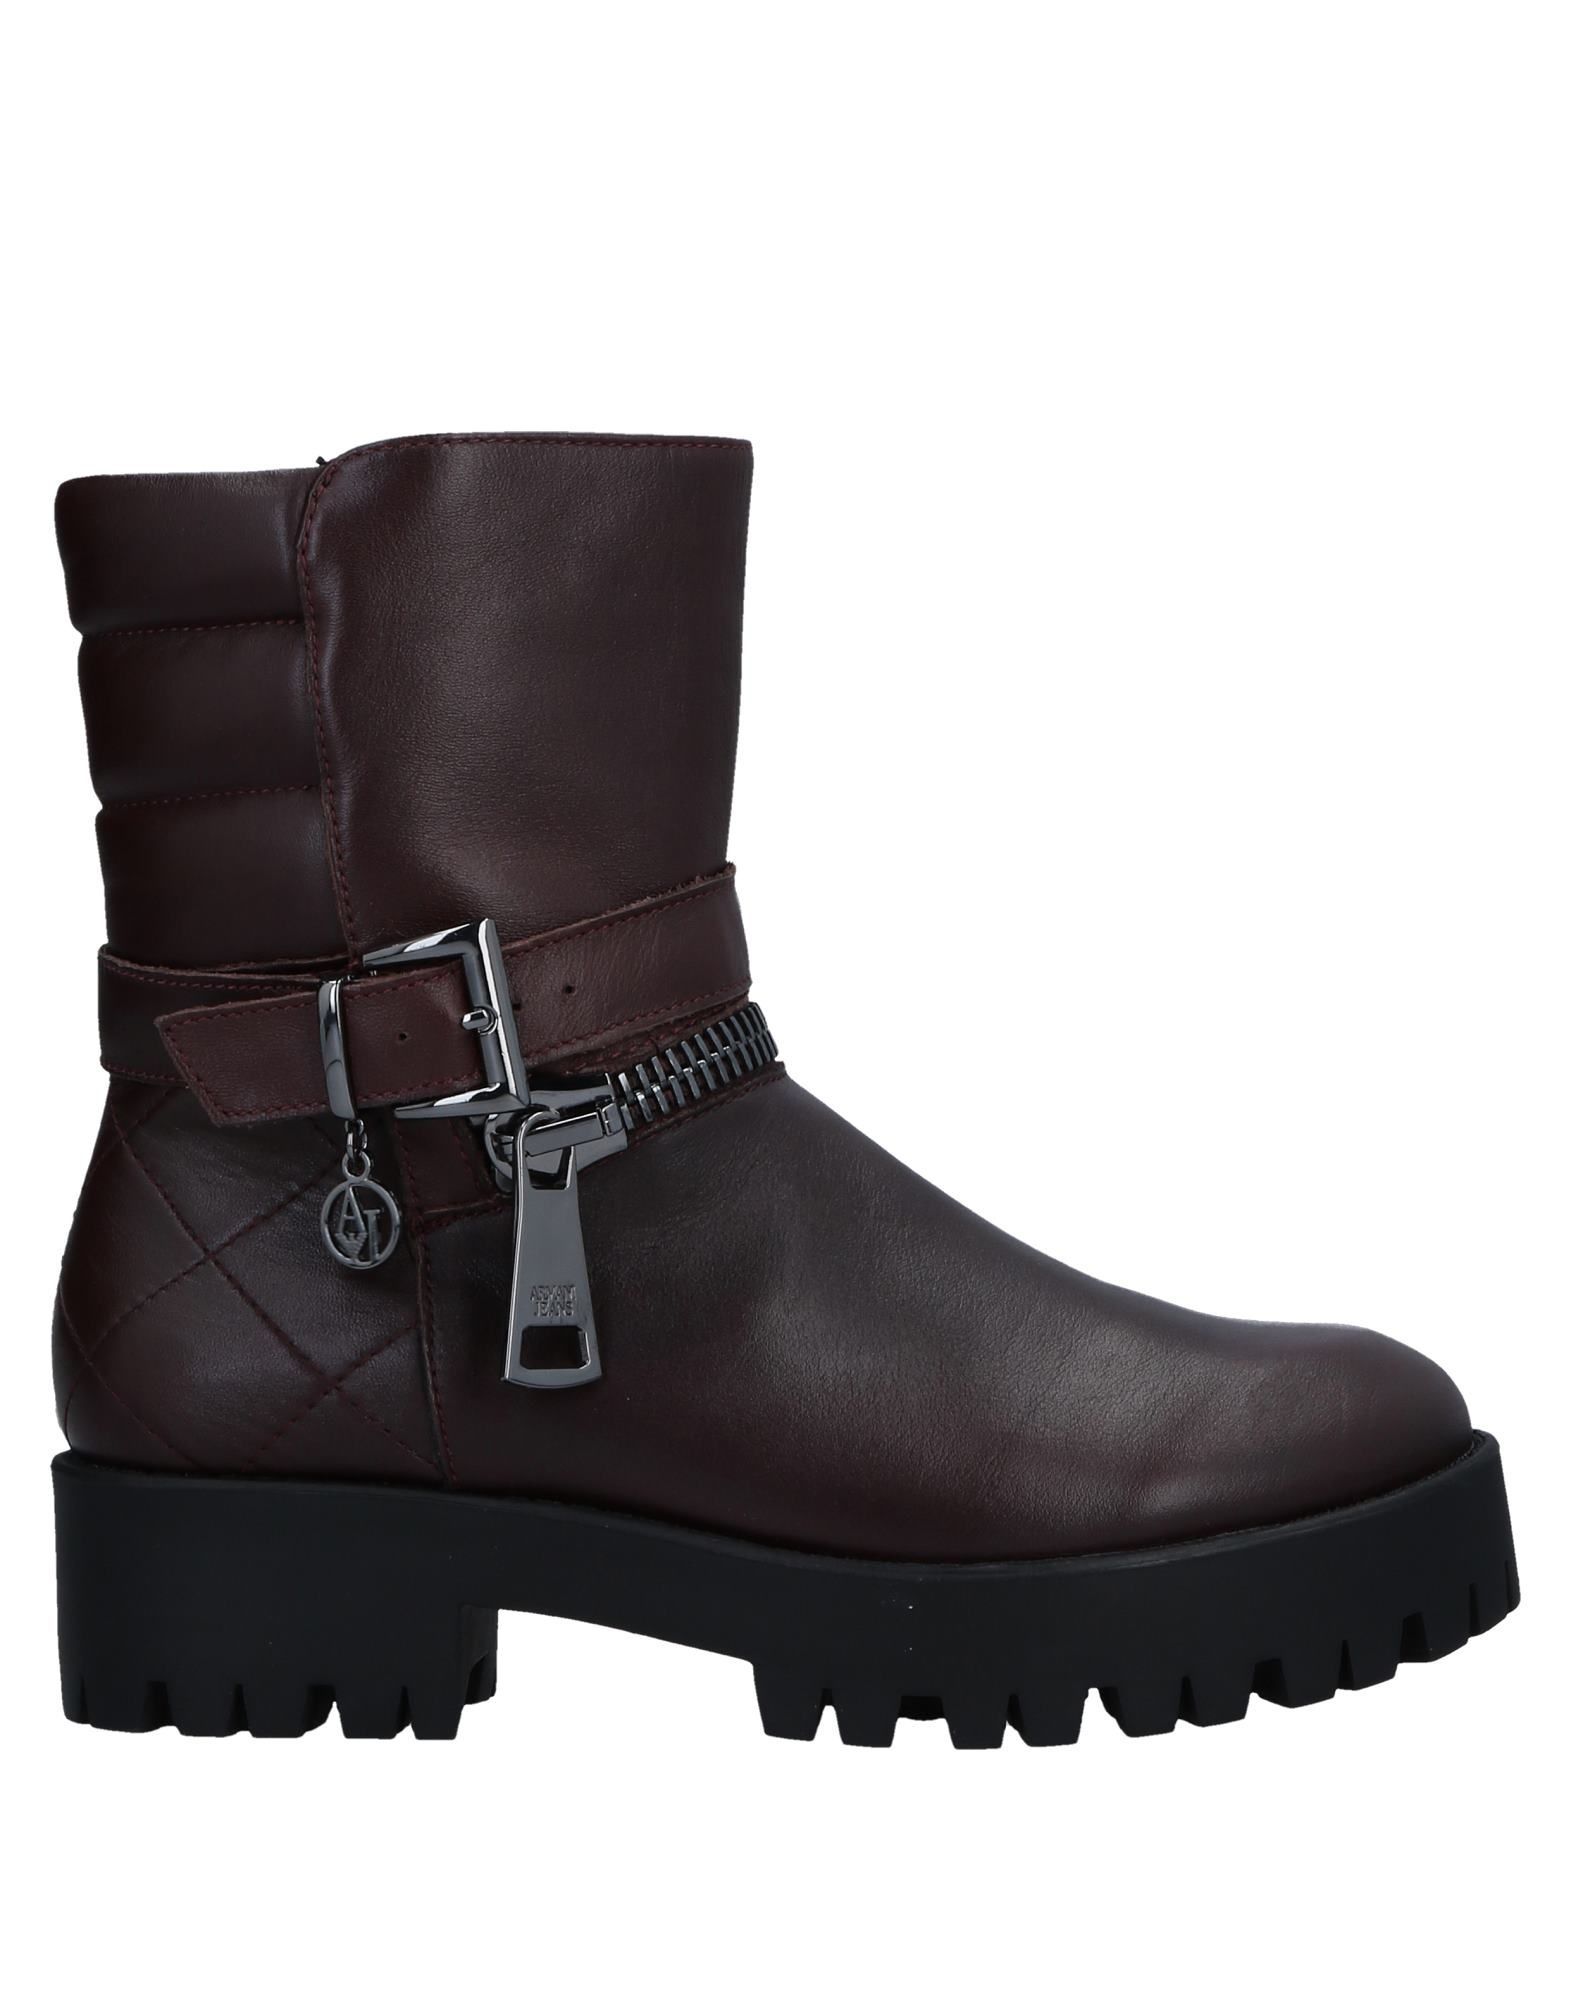 Armani Jeans Ankle Boot - Women Armani on Jeans Ankle Boots online on Armani  Canada - 11313256OL b8a4e3